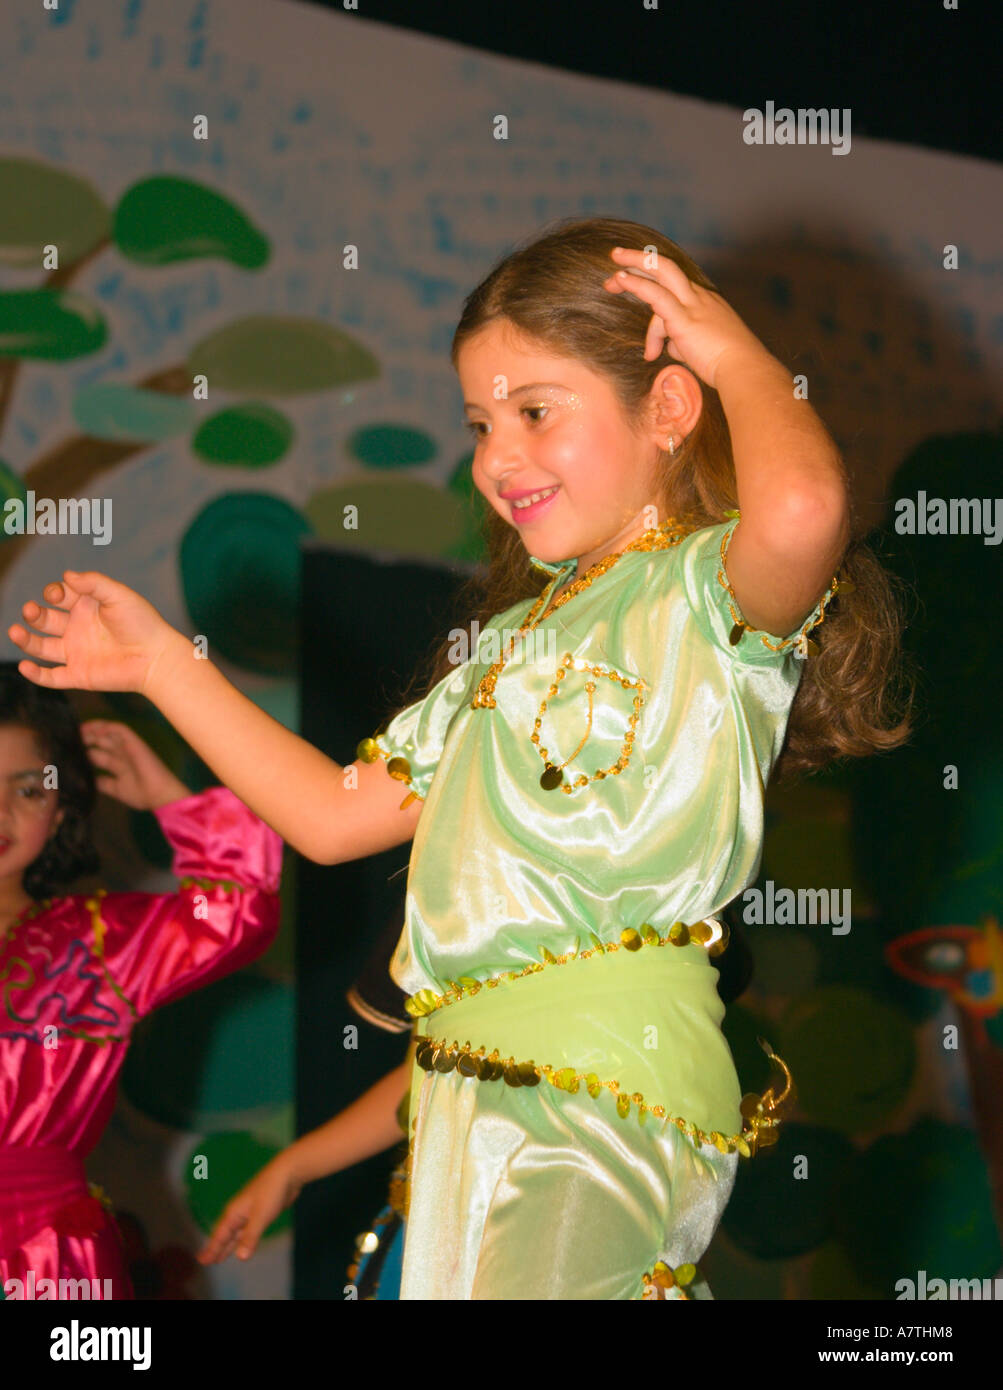 young school girl dressed in costume for school play  sc 1 st  Alamy & young school girl dressed in costume for school play Stock Photo ...